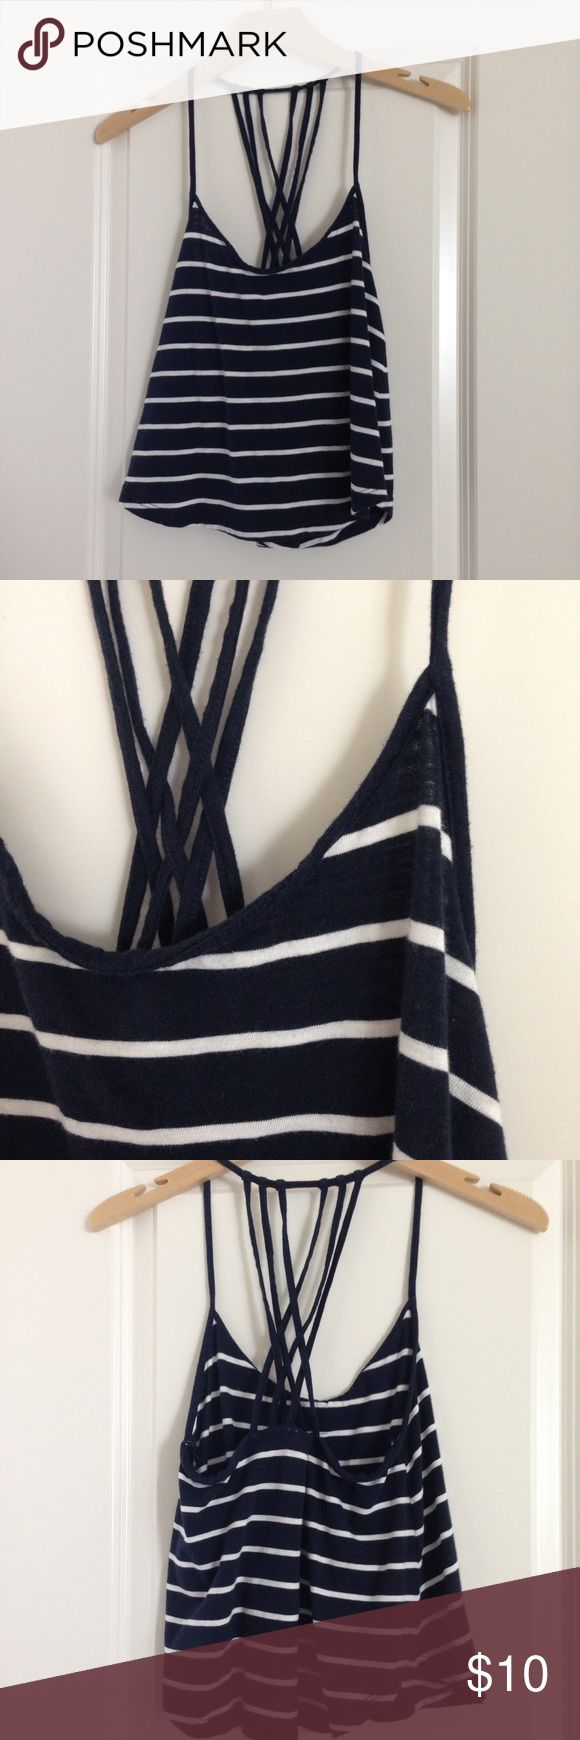 """navy striped strappy cross back tank top size s. good condition. navy and white stripes. worn twice and washed, so it doesnt look """"off the rack"""" new. no flaws, pilling, stains, or rips. fabric has the lived in look. cami style. criss cross straps in back. looks really cute with a bralette! Forever 21 Tops Tank Tops"""